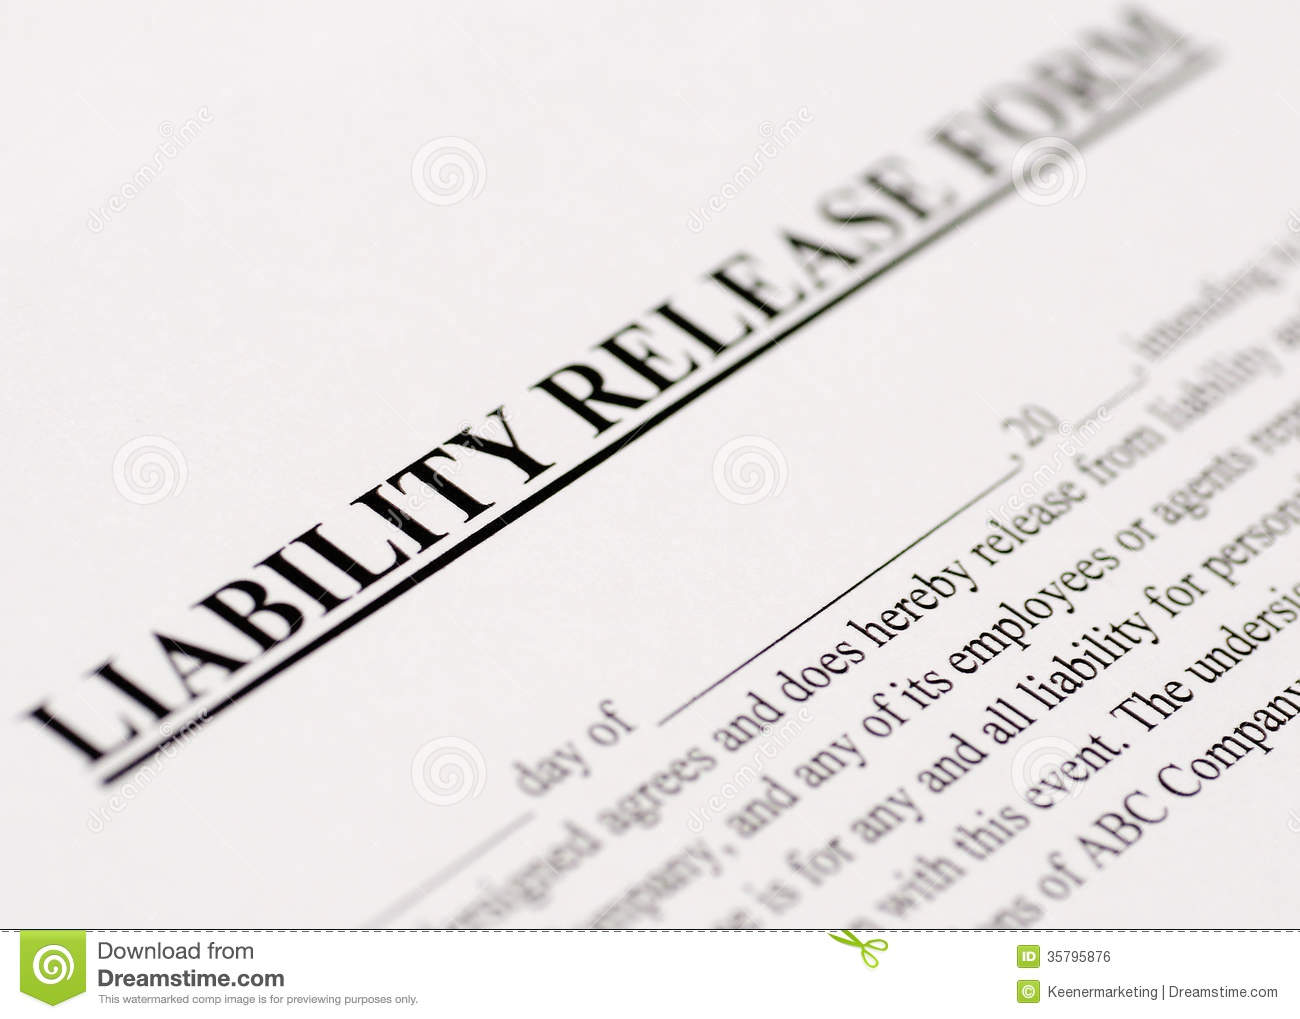 Liability Release Form stock photo. Image of paperwork